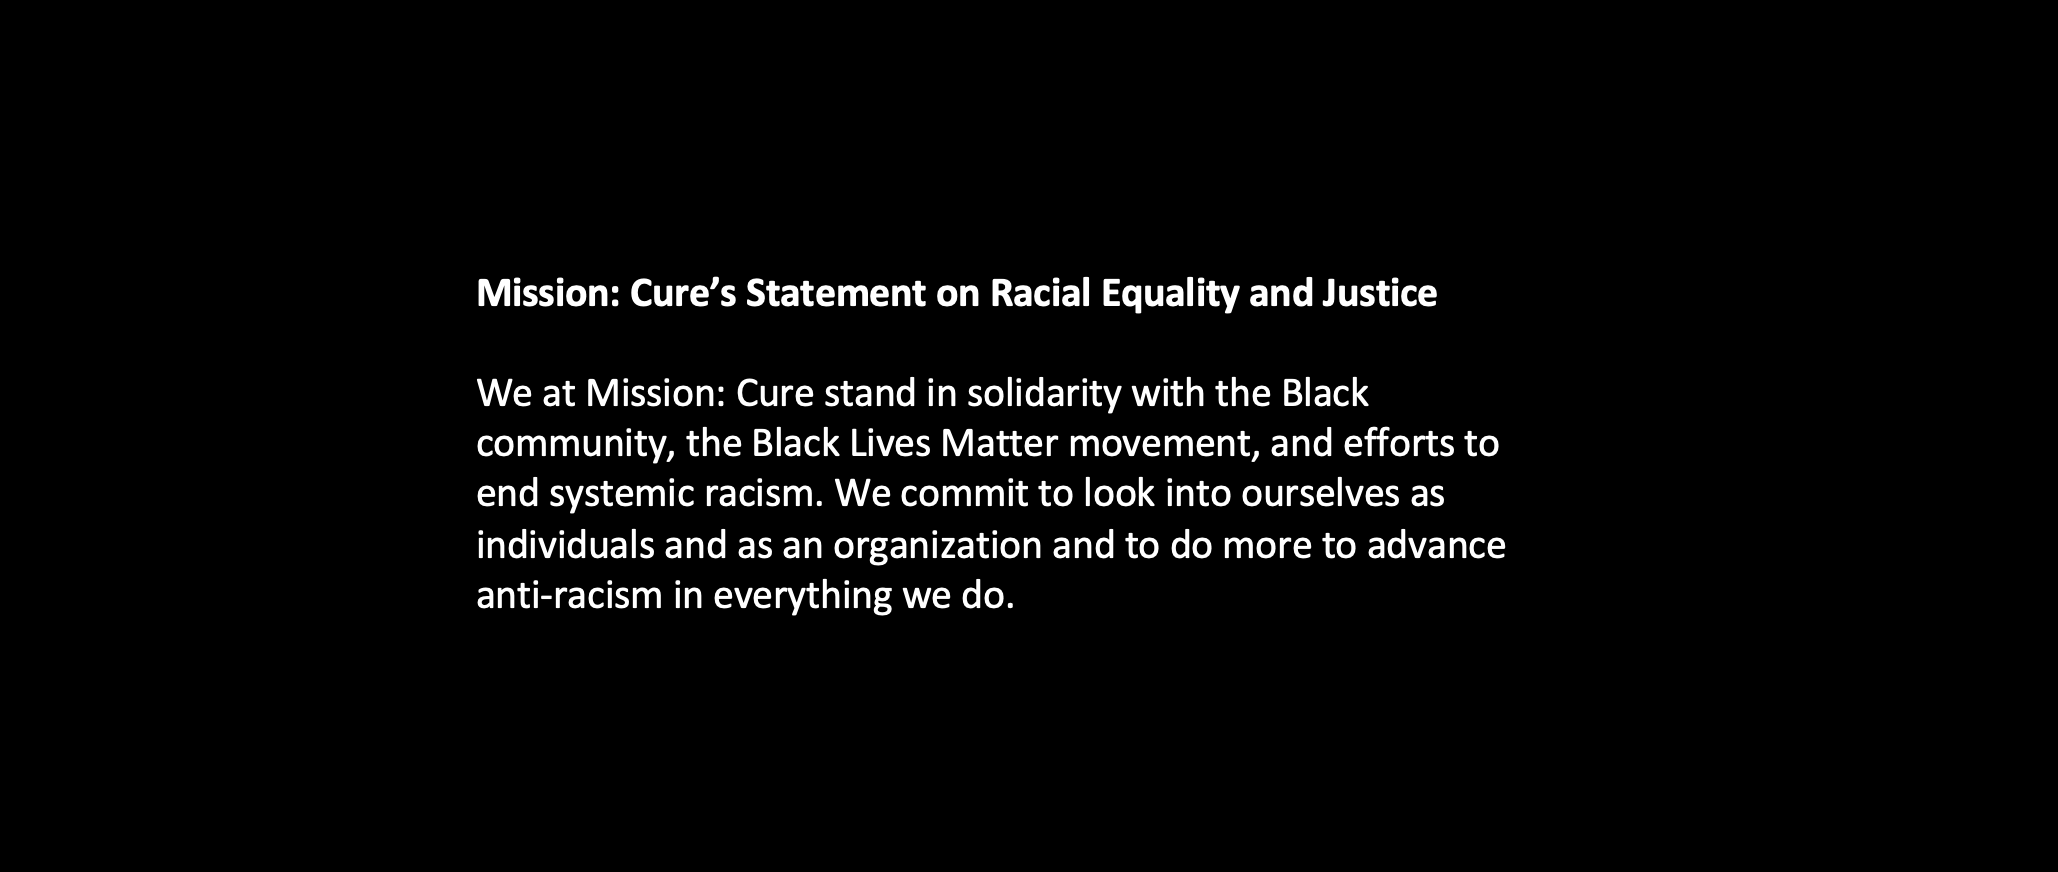 Mission: Cure's Statement on Racial Equality and Justice